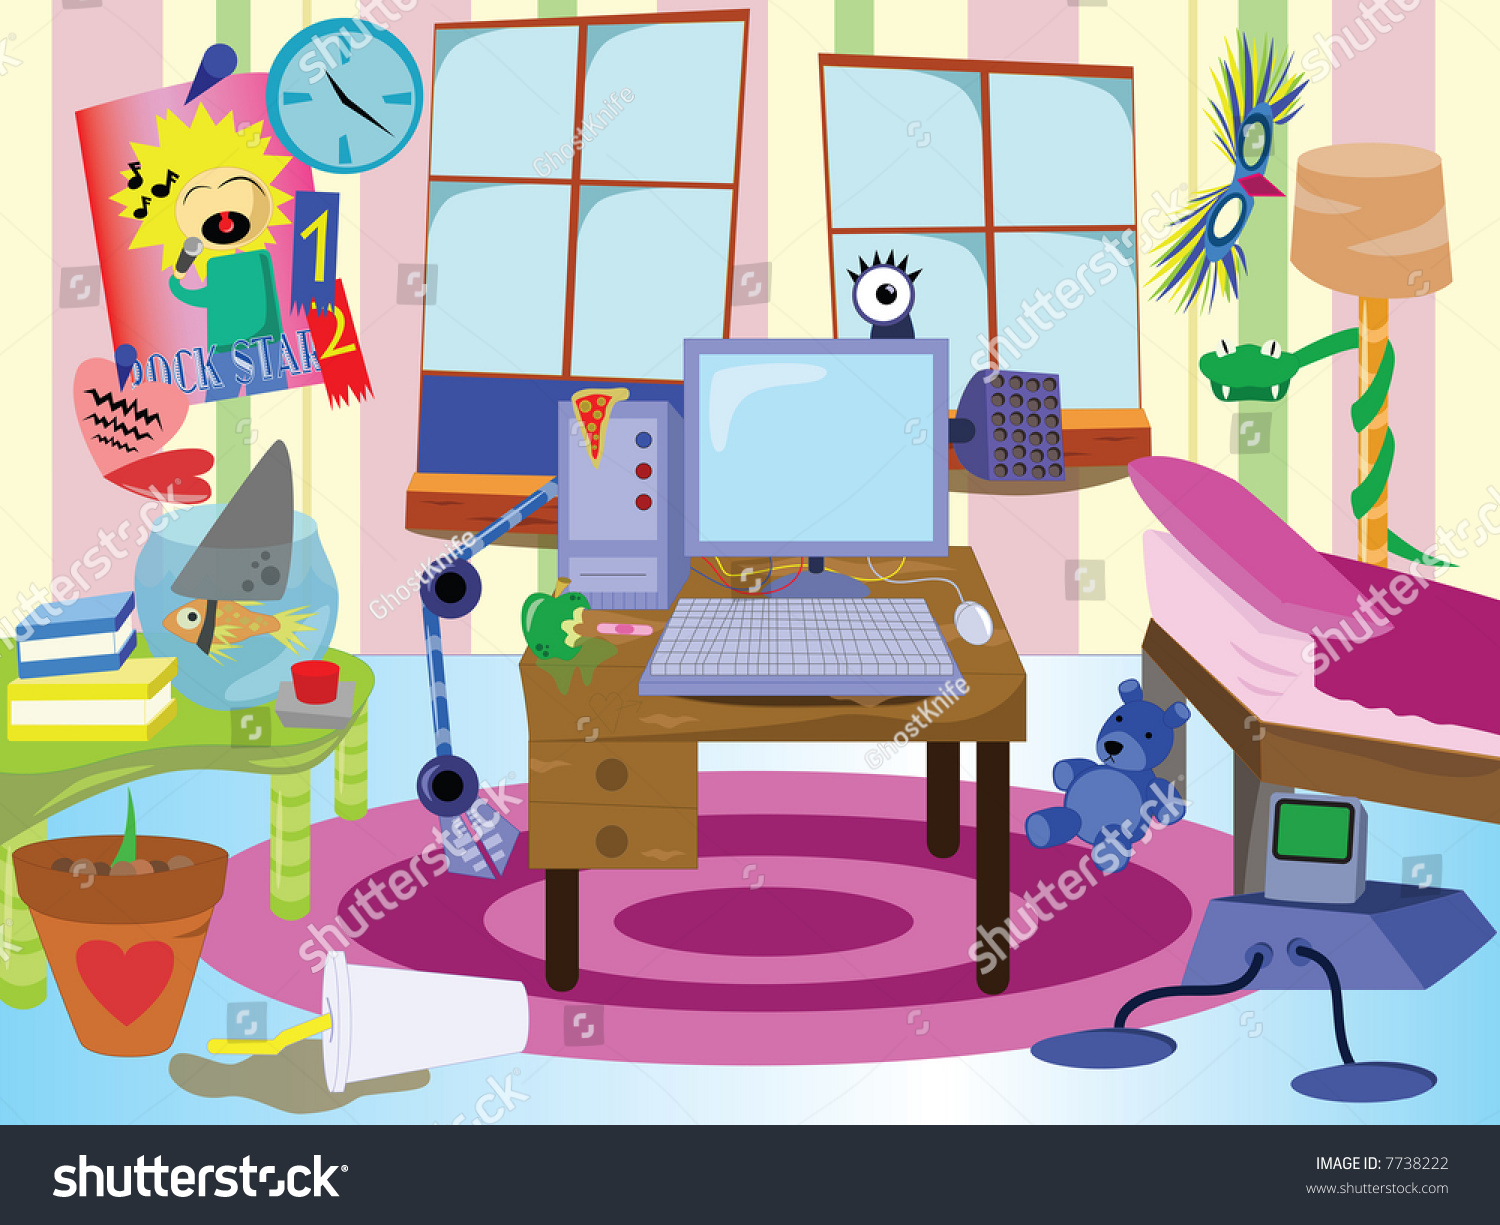 messy house clipart - photo #19